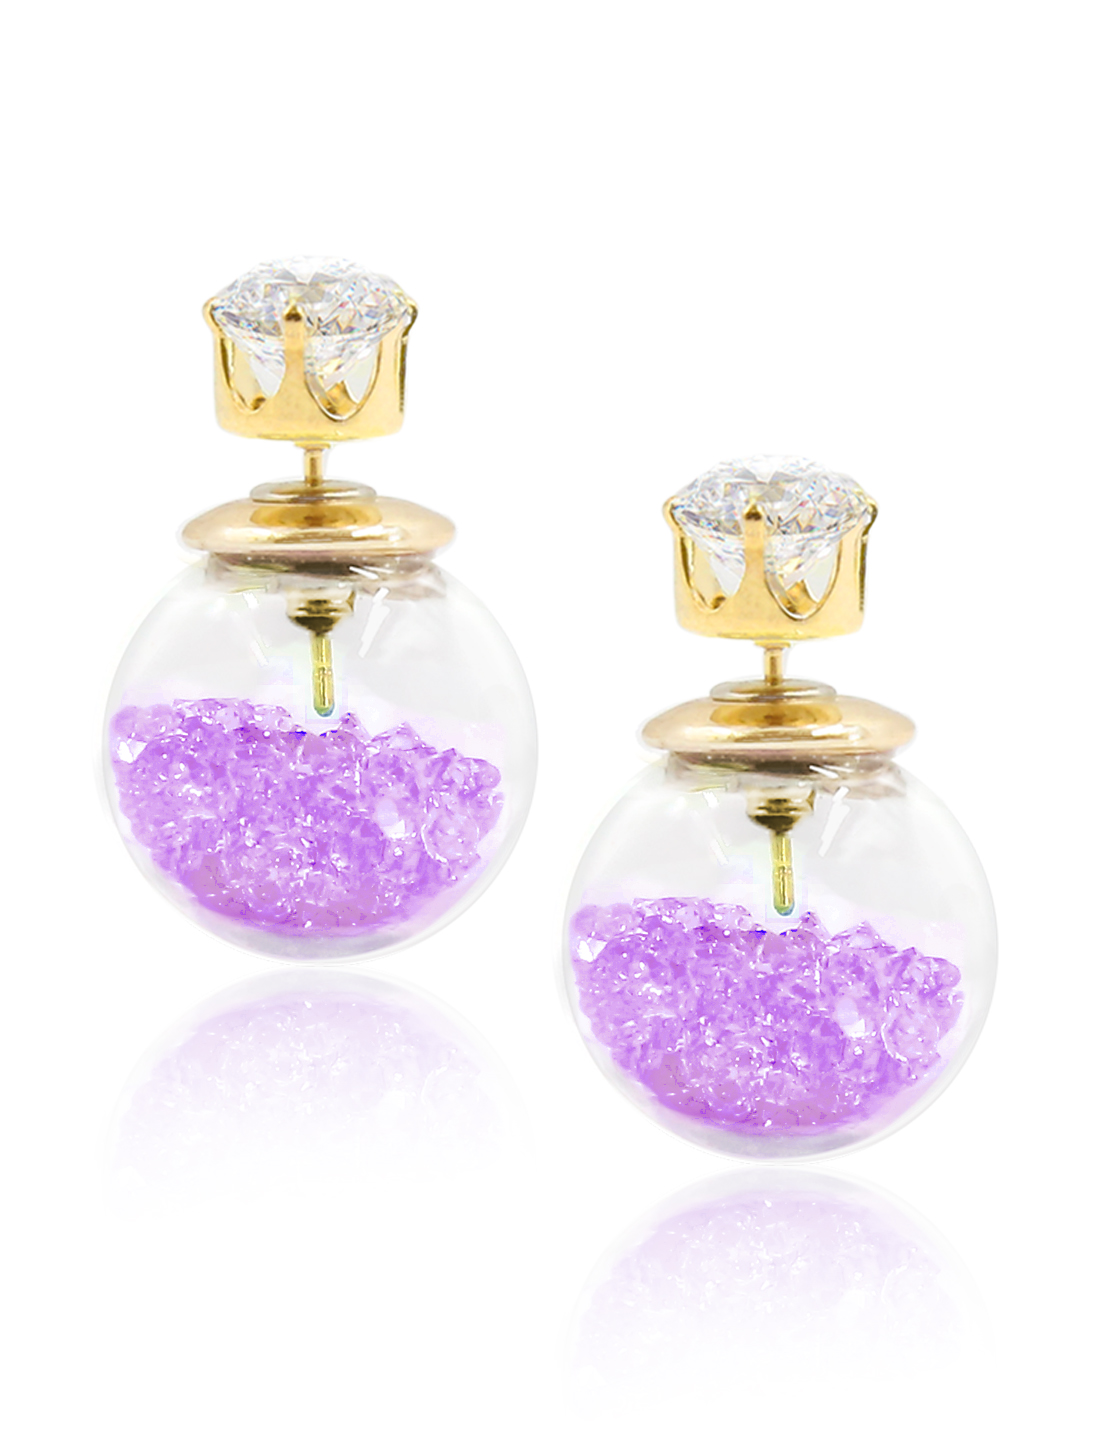 Fashion Women Elegant Double Sides Zircon Transparent Ball Faux Crystal Earrings Ear Stud 1 Pair Purple